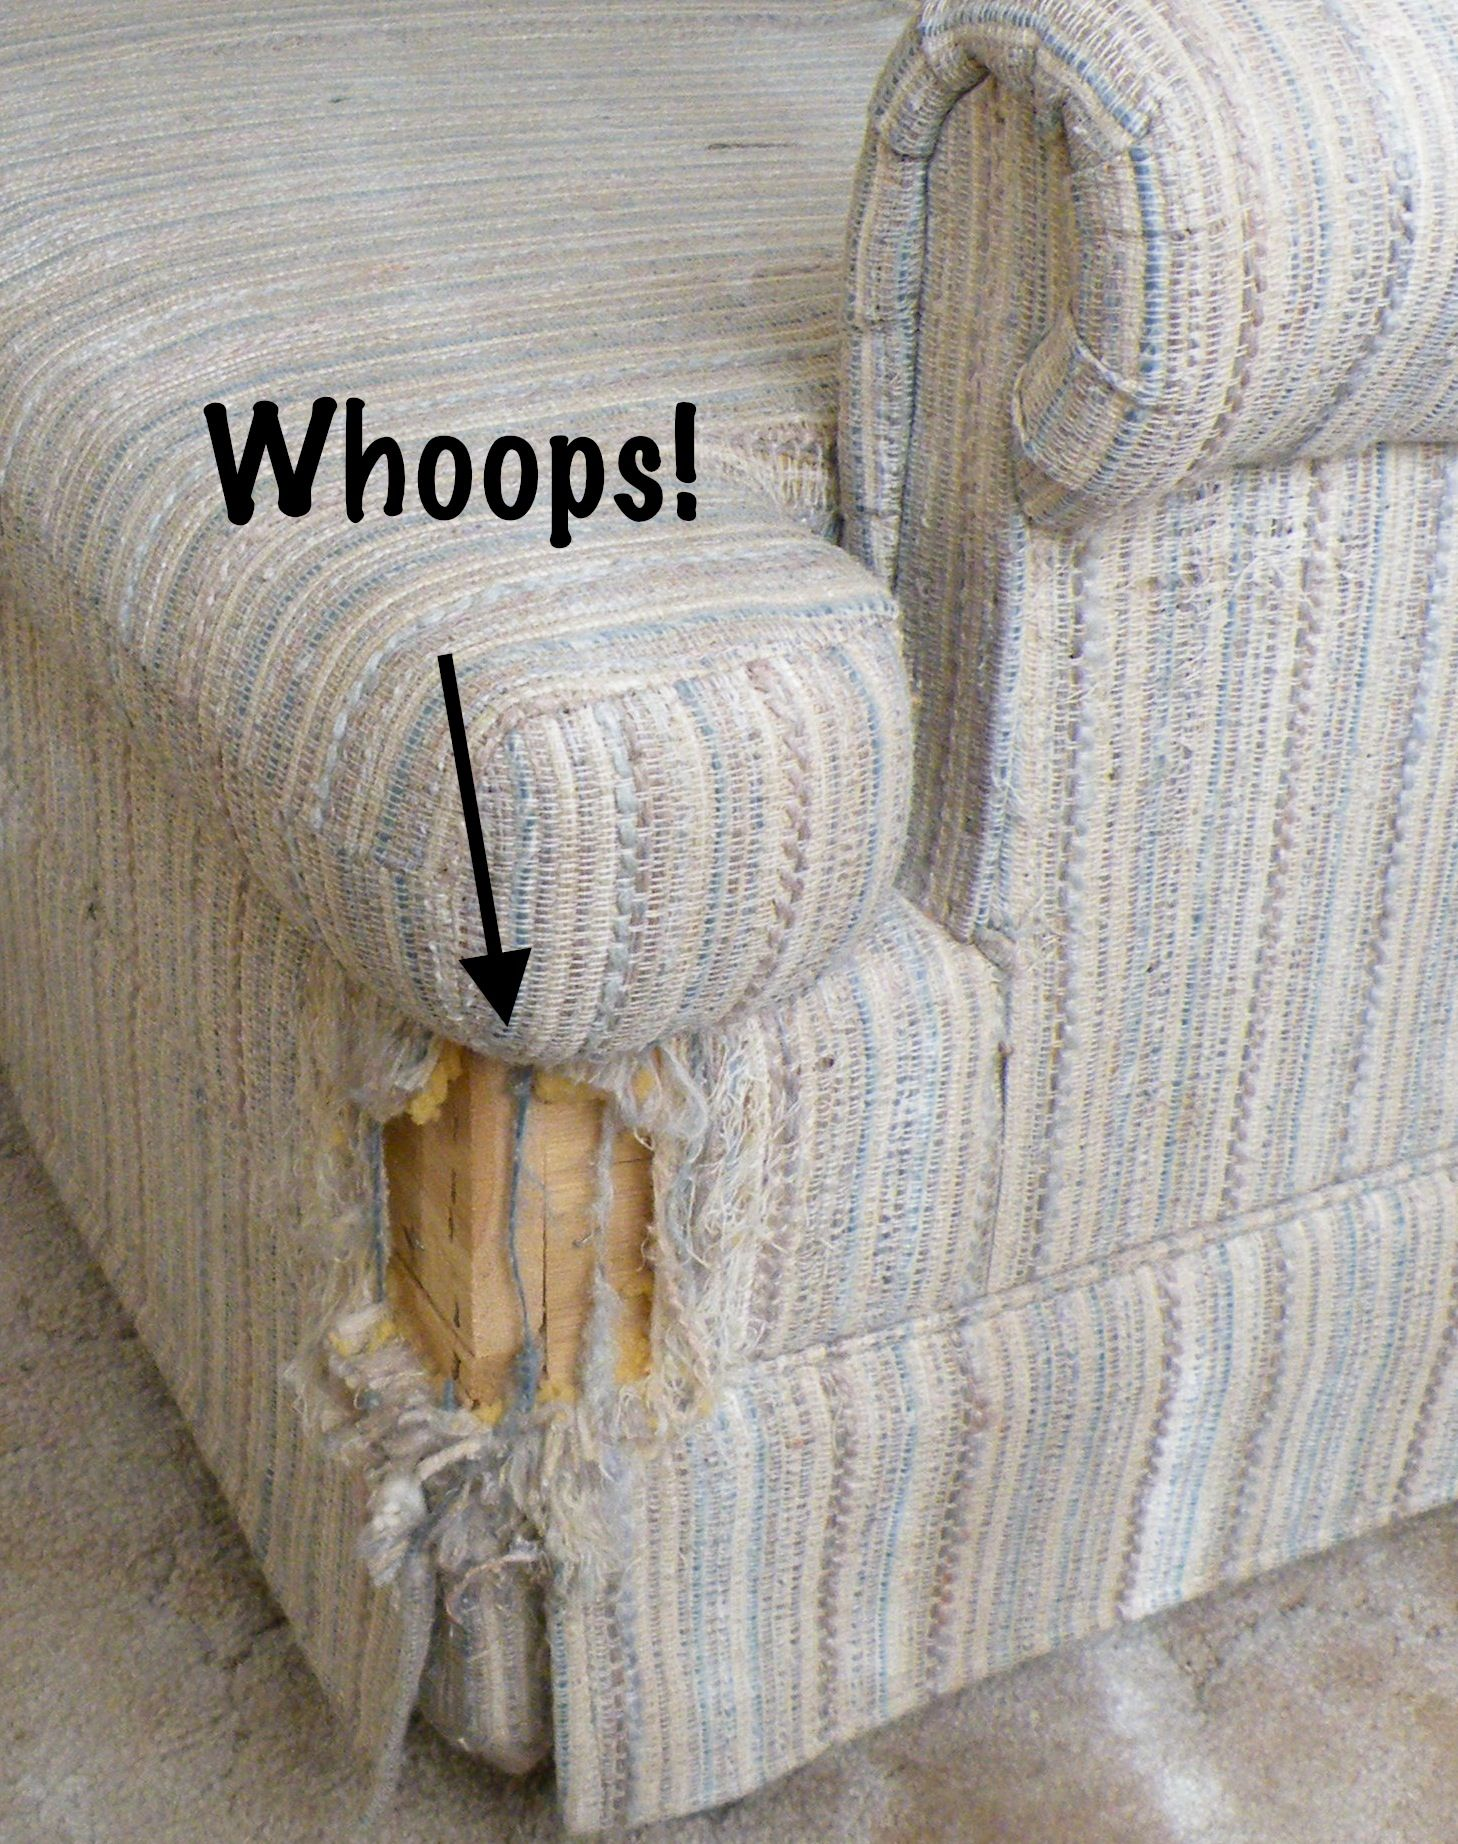 How to keep cats from scratching furniture? Smart